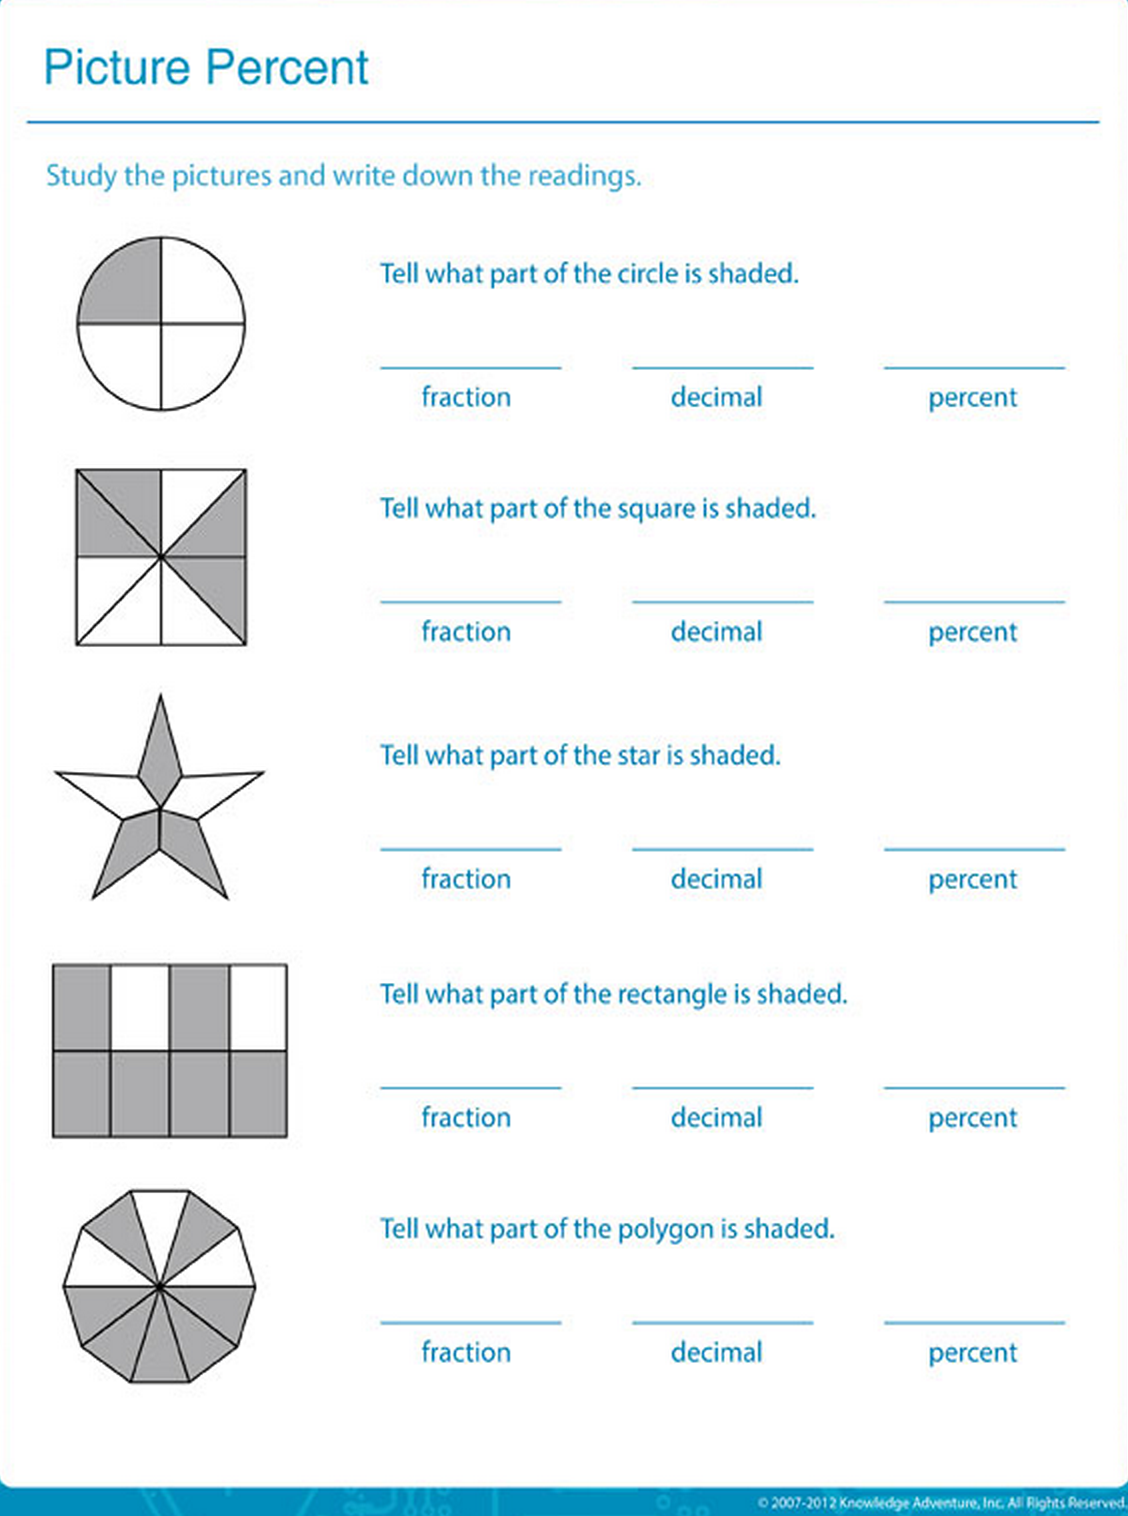 worksheet Percentage Worksheets write down the shaded area in fractions decimals and percentages picture percent percentage worksheet for kids math blaster